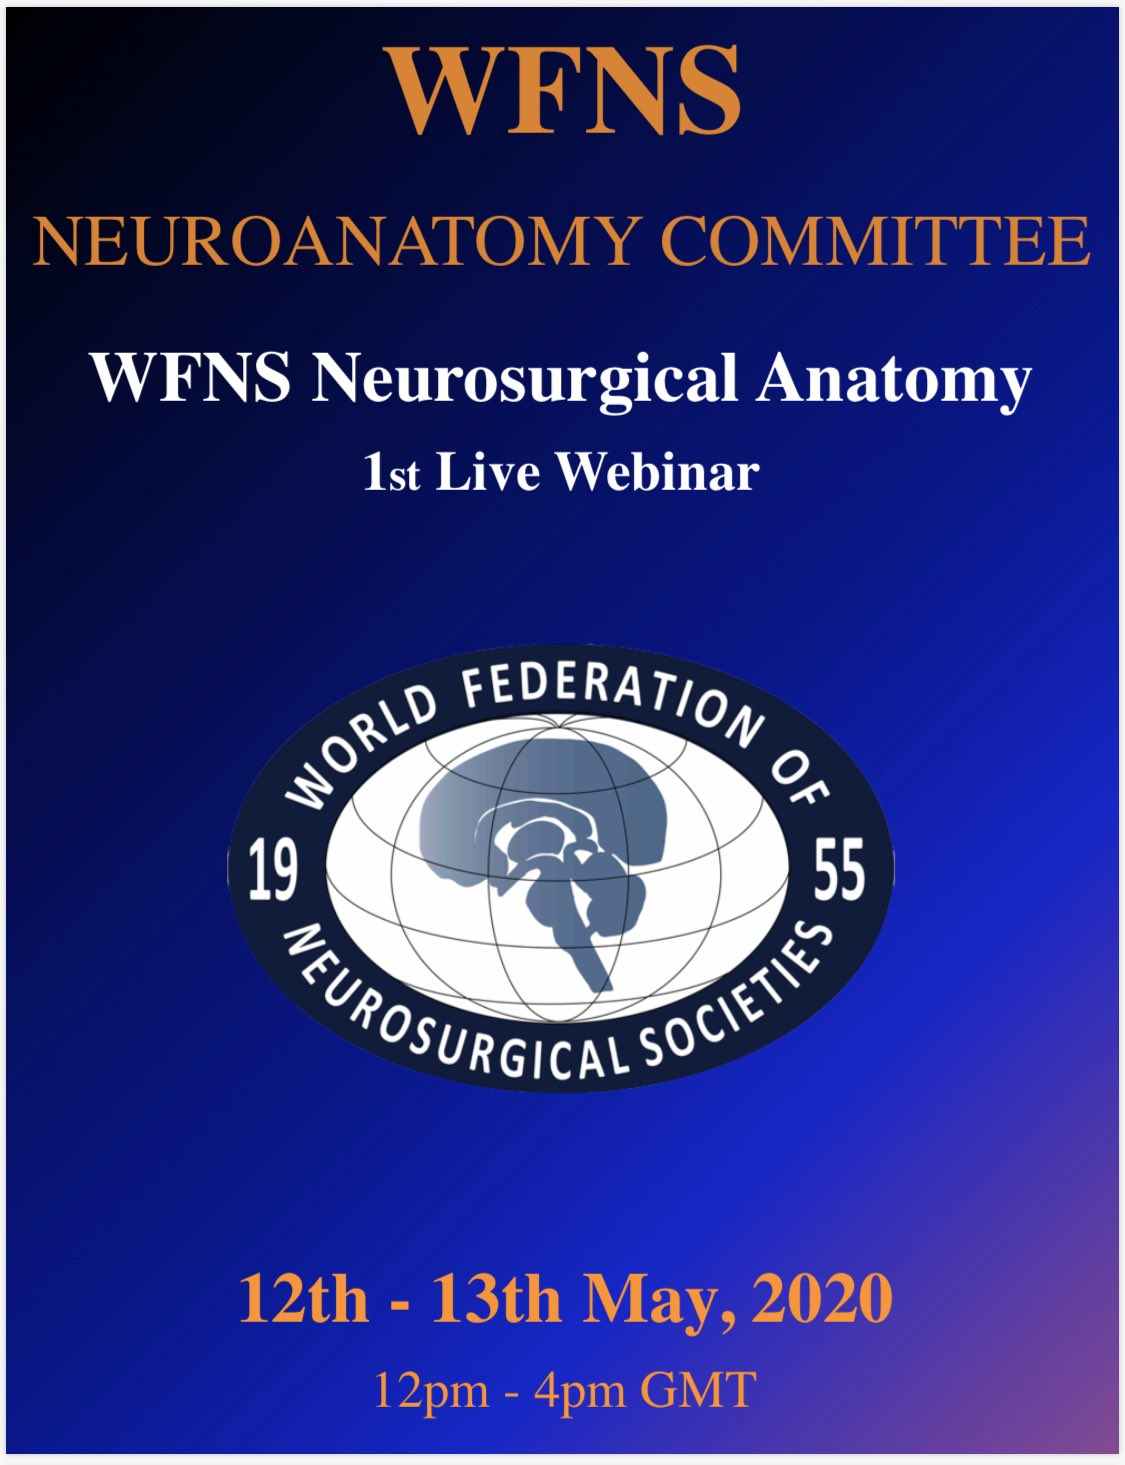 WFNS Neurosurgical Anatomy Webinar